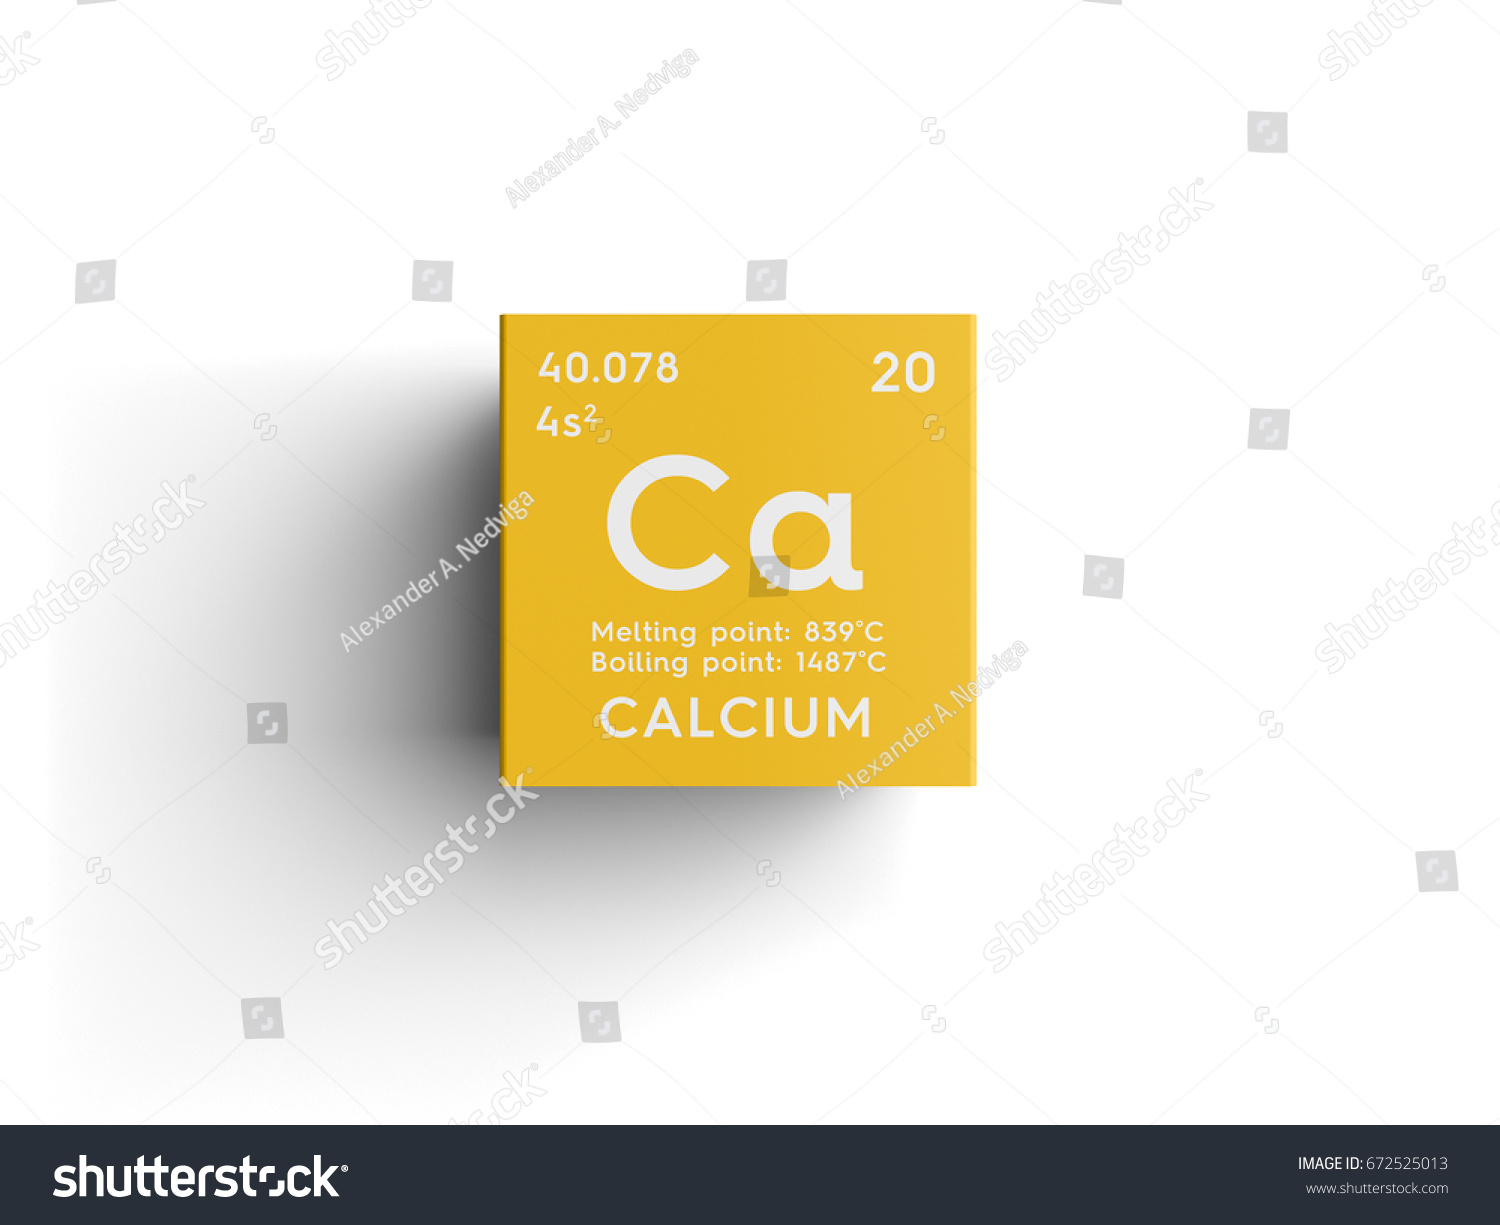 Calcium alkaline earth metals chemical element stock illustration calcium alkaline earth metals chemical element of mendeleevs periodic table calcium in square gamestrikefo Choice Image